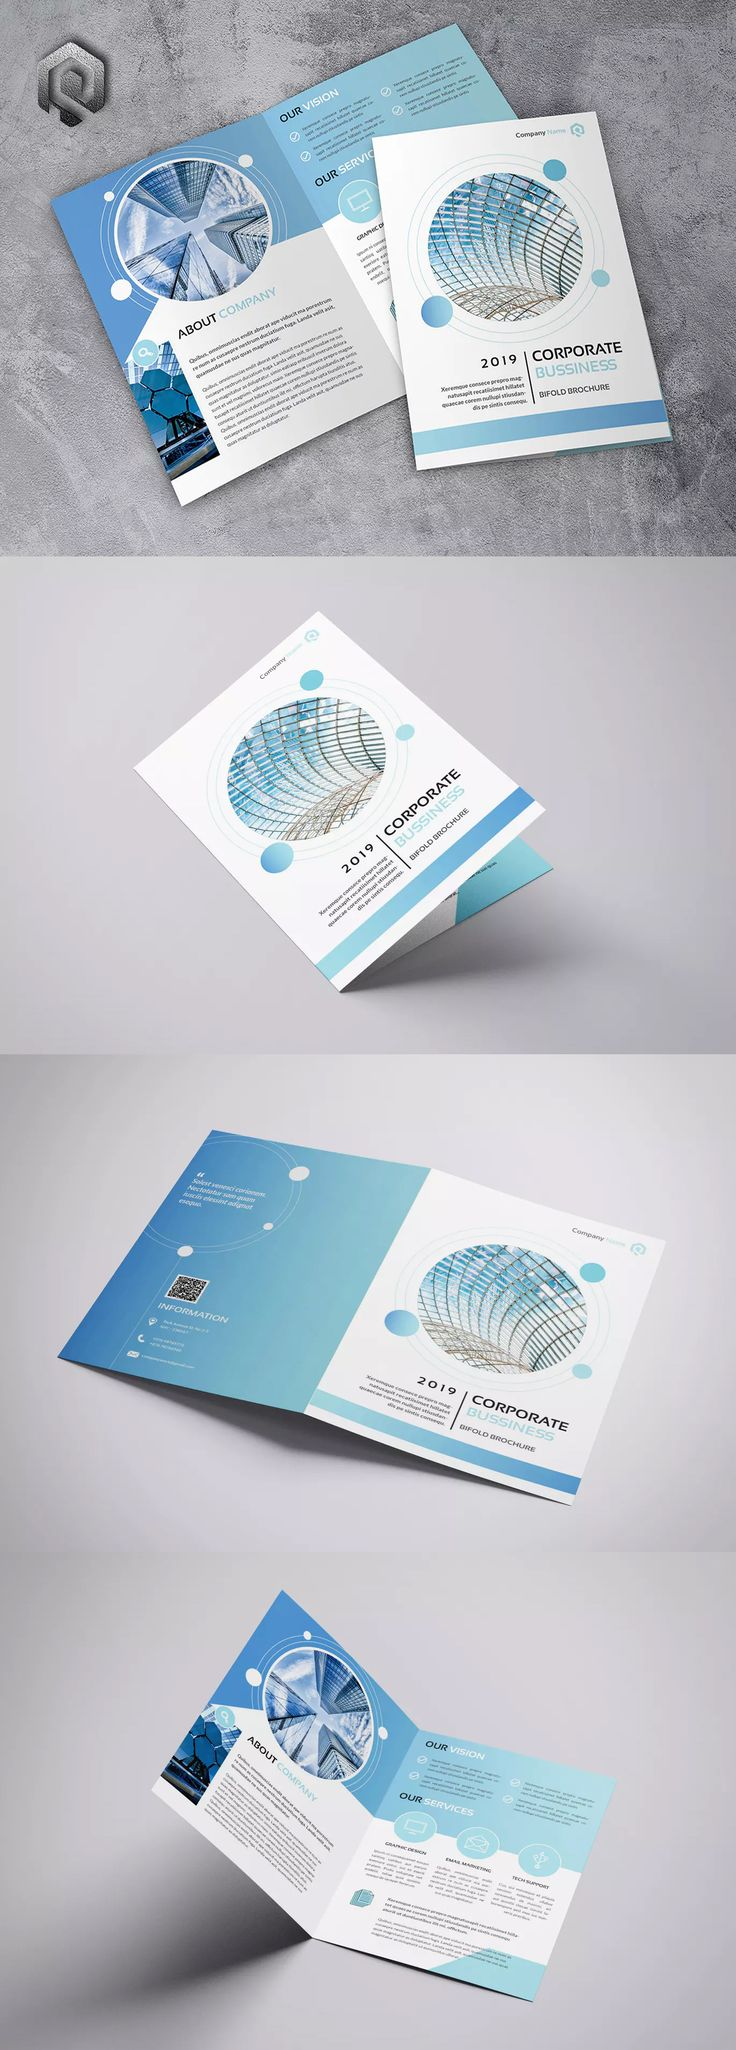 Company Technology Bifold Brochure Template InDesign INDD